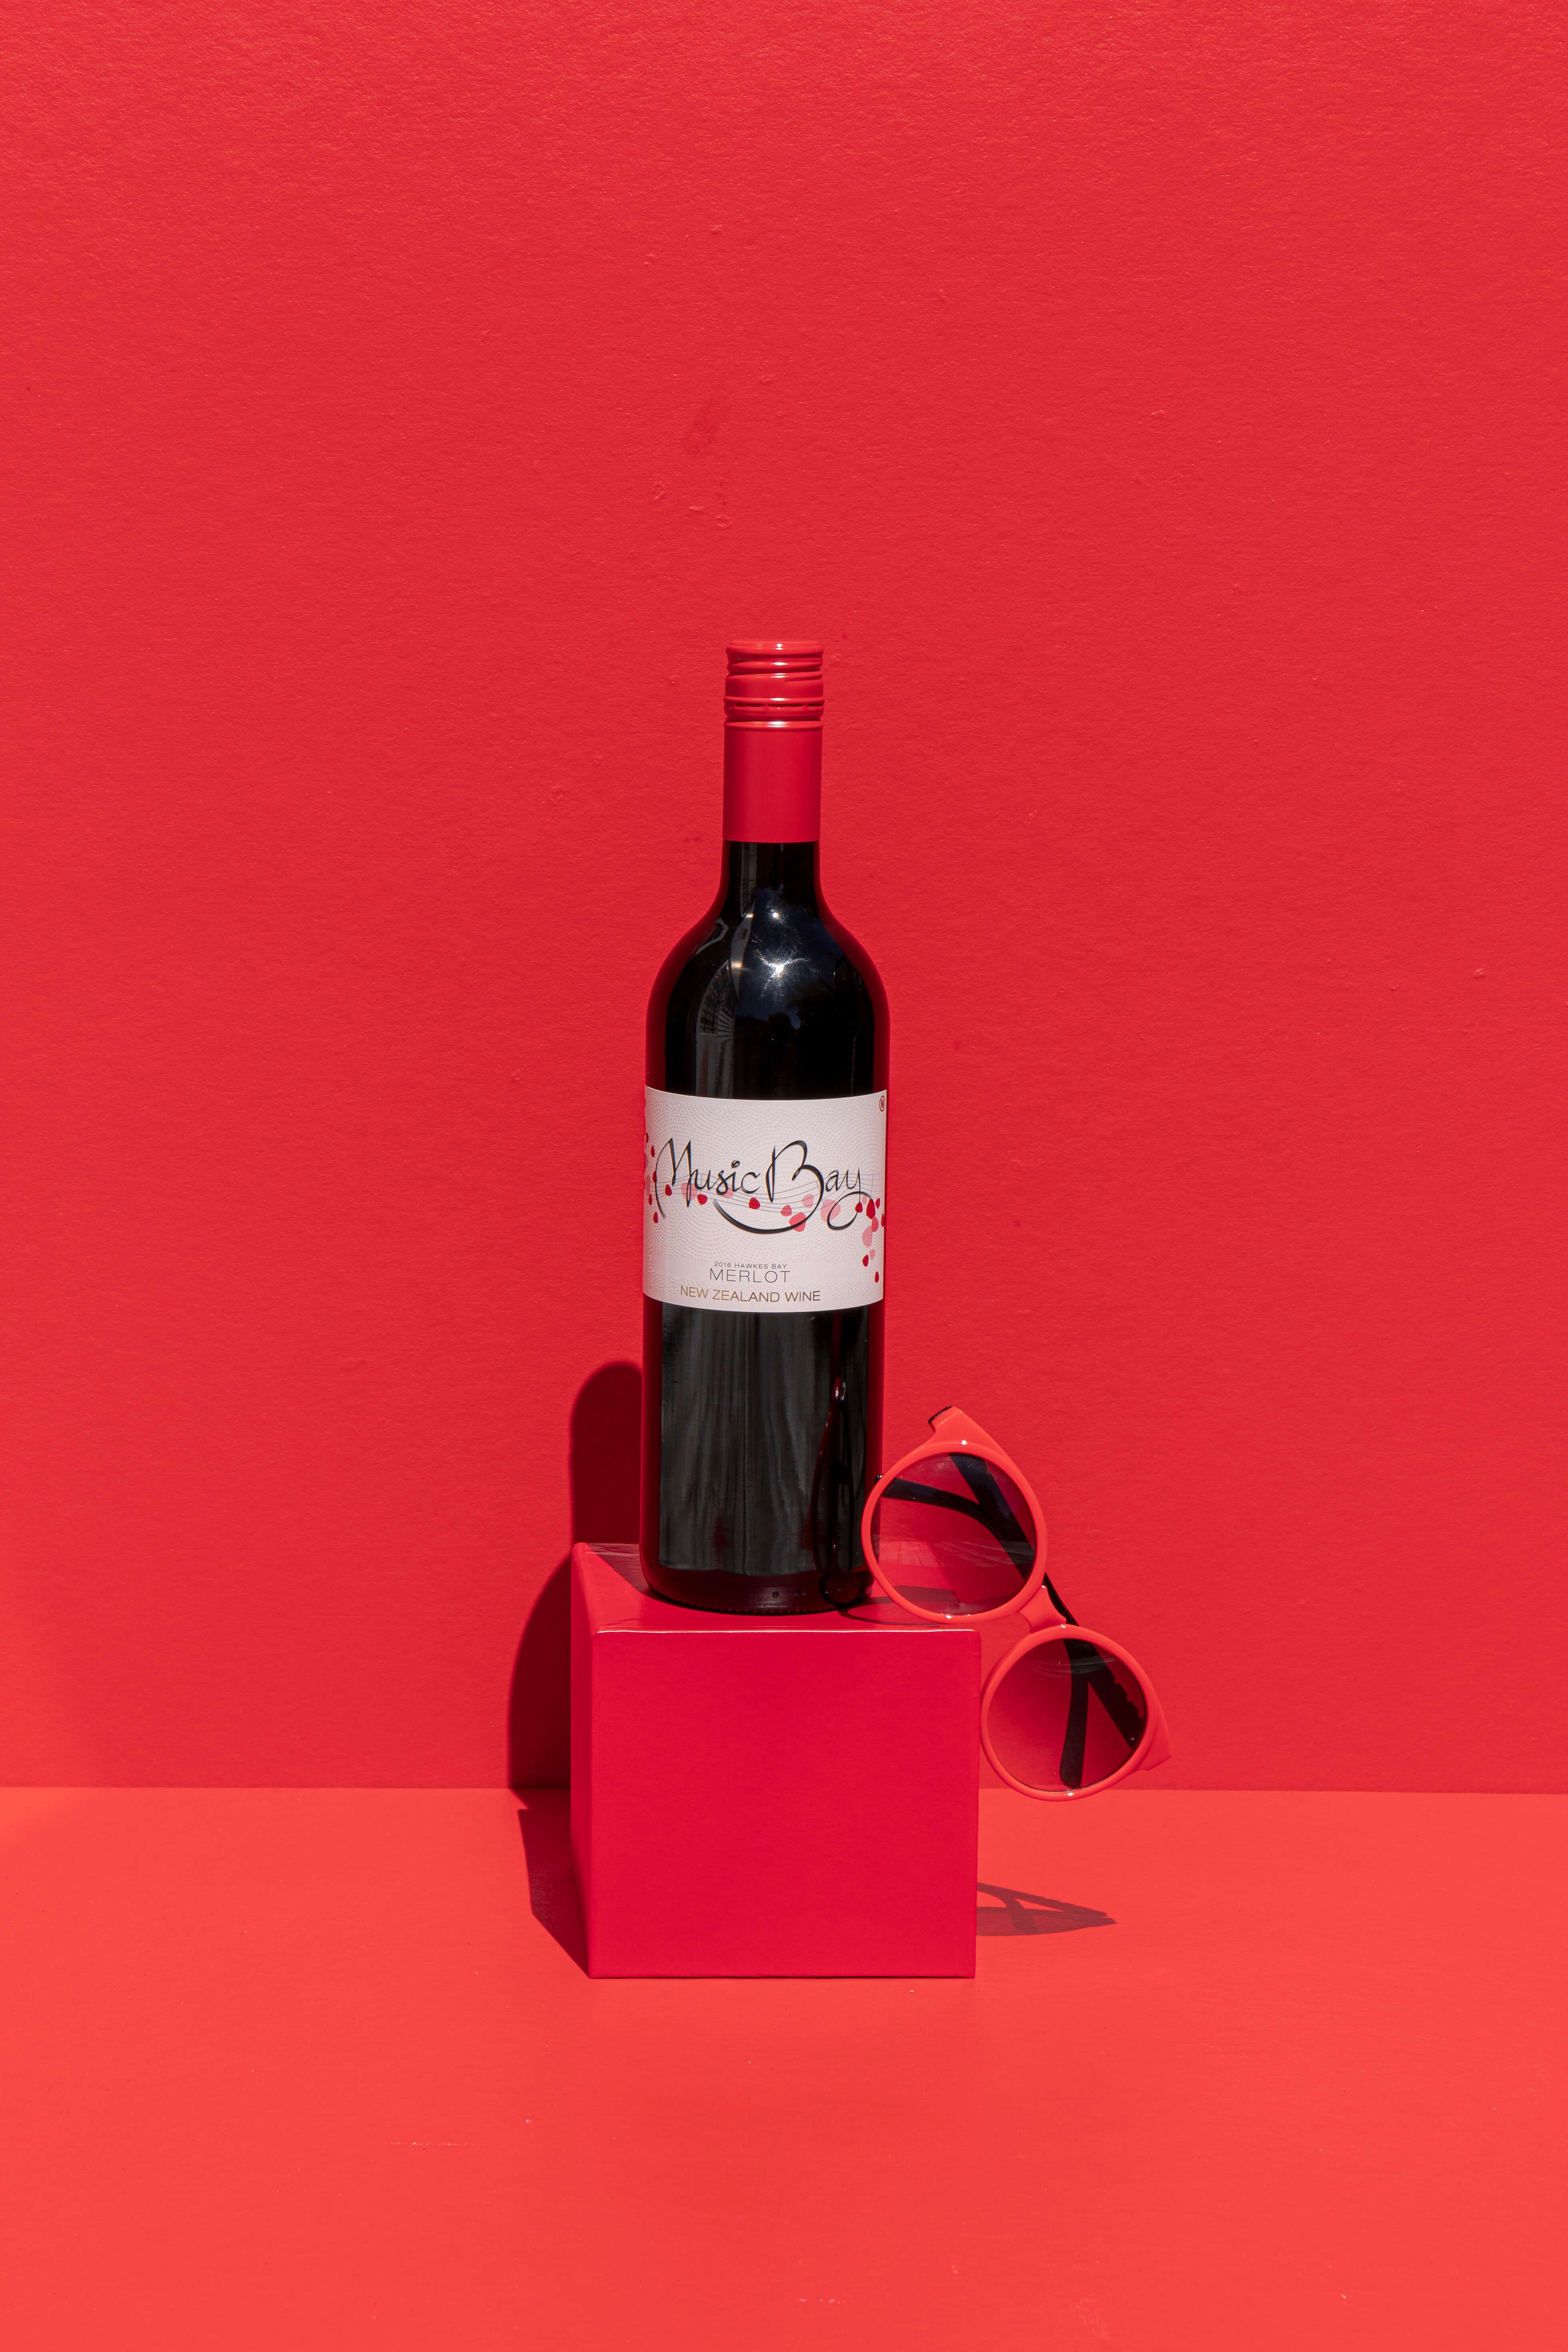 Home Revised Edition Creative Styling Photography In 2020 Wine Bottle Photography Wine Photography Photography